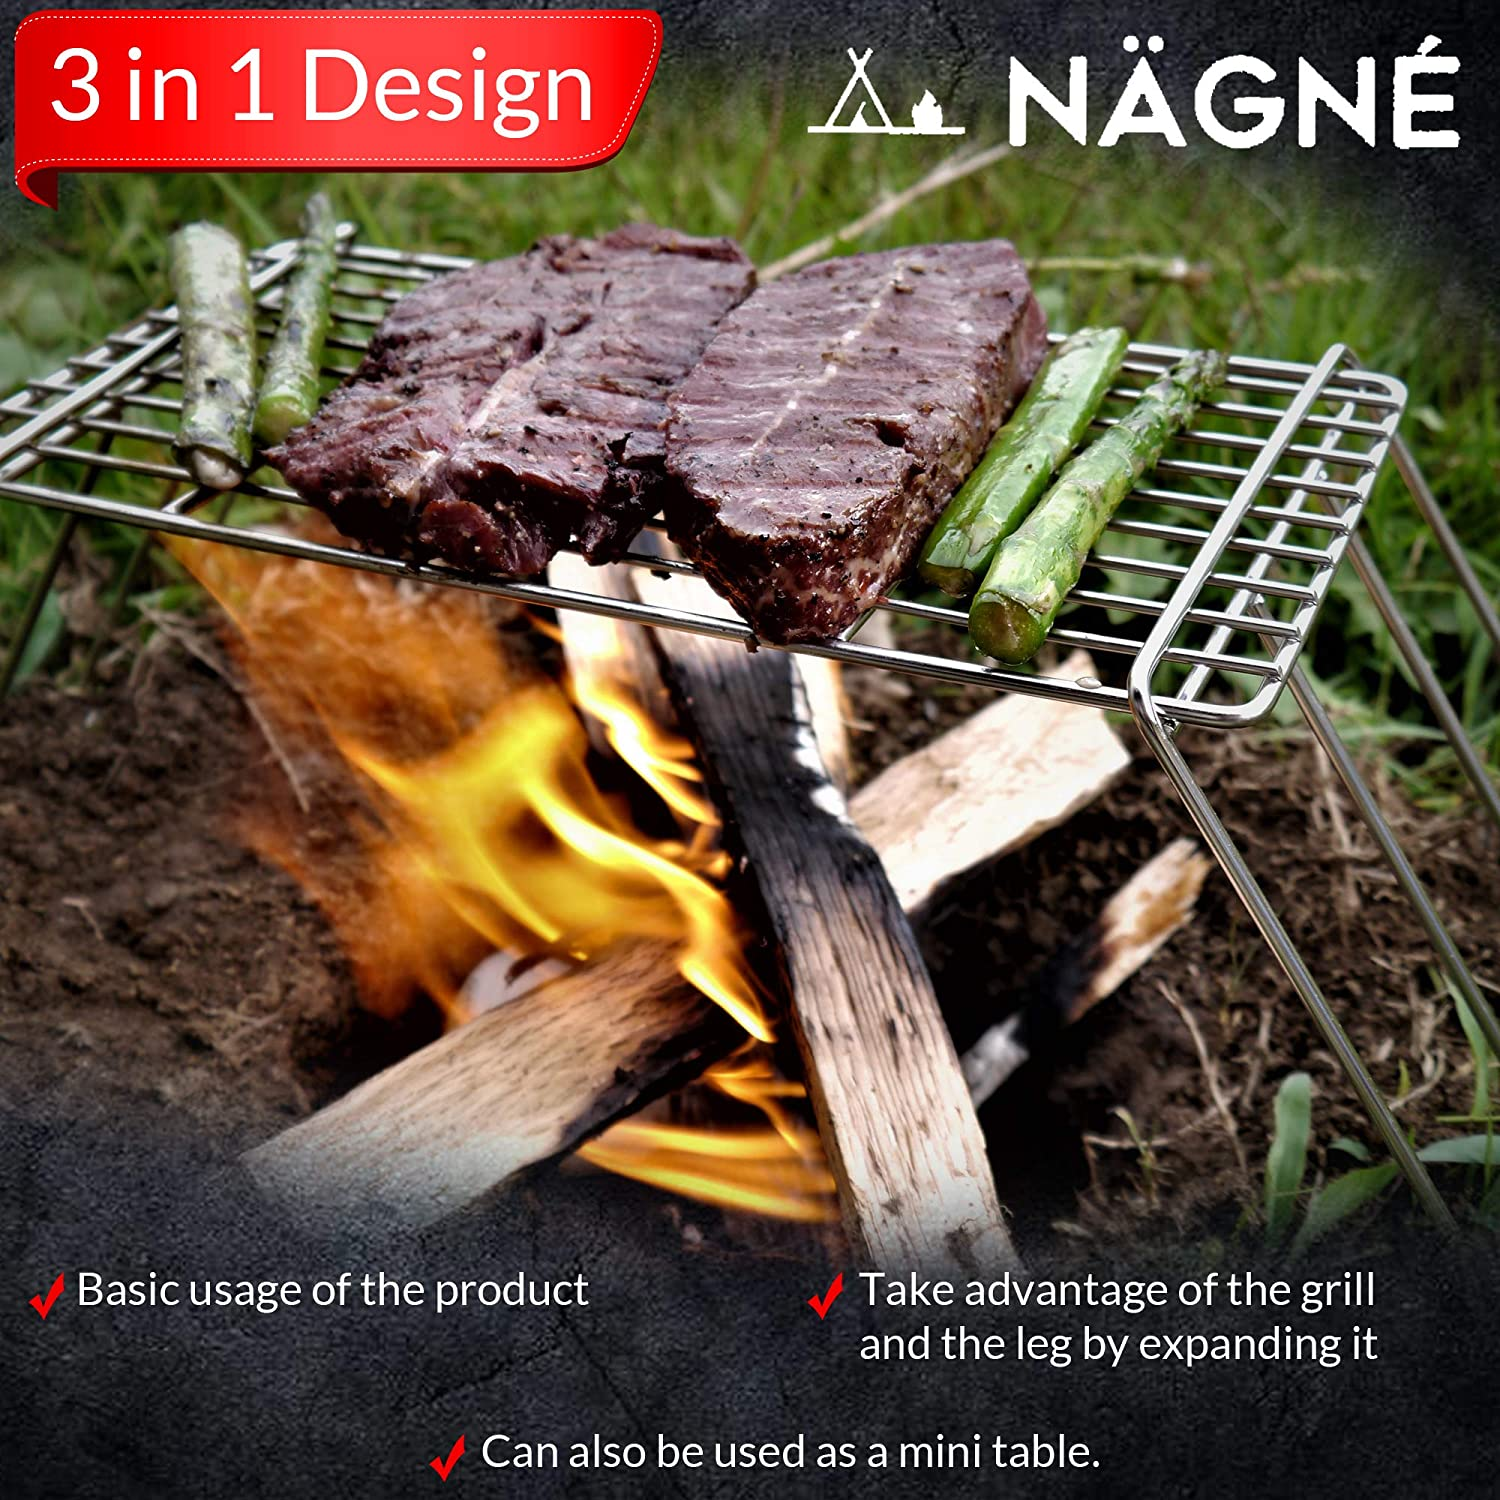 bushcraft backpackers grill grate set NAGNE welded 304 stainless steel carry bag included mini table cooking grate stand leg can be cooking grill compact size perfect gear 3 in 1 design